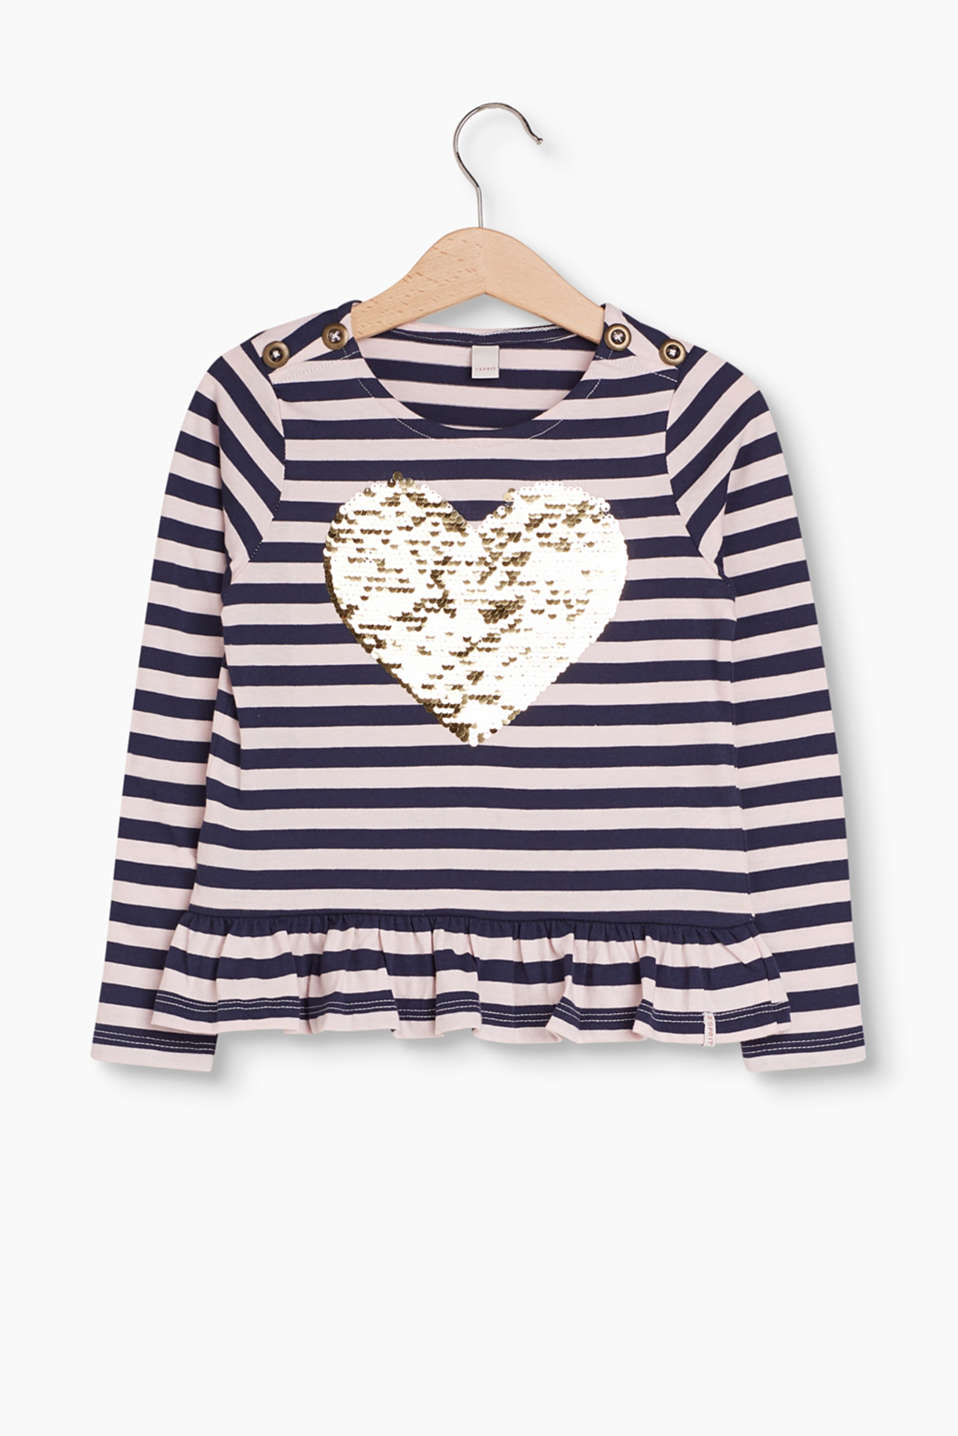 On-trend and adorable: striped long sleeve top with a sequin motif and hem frill